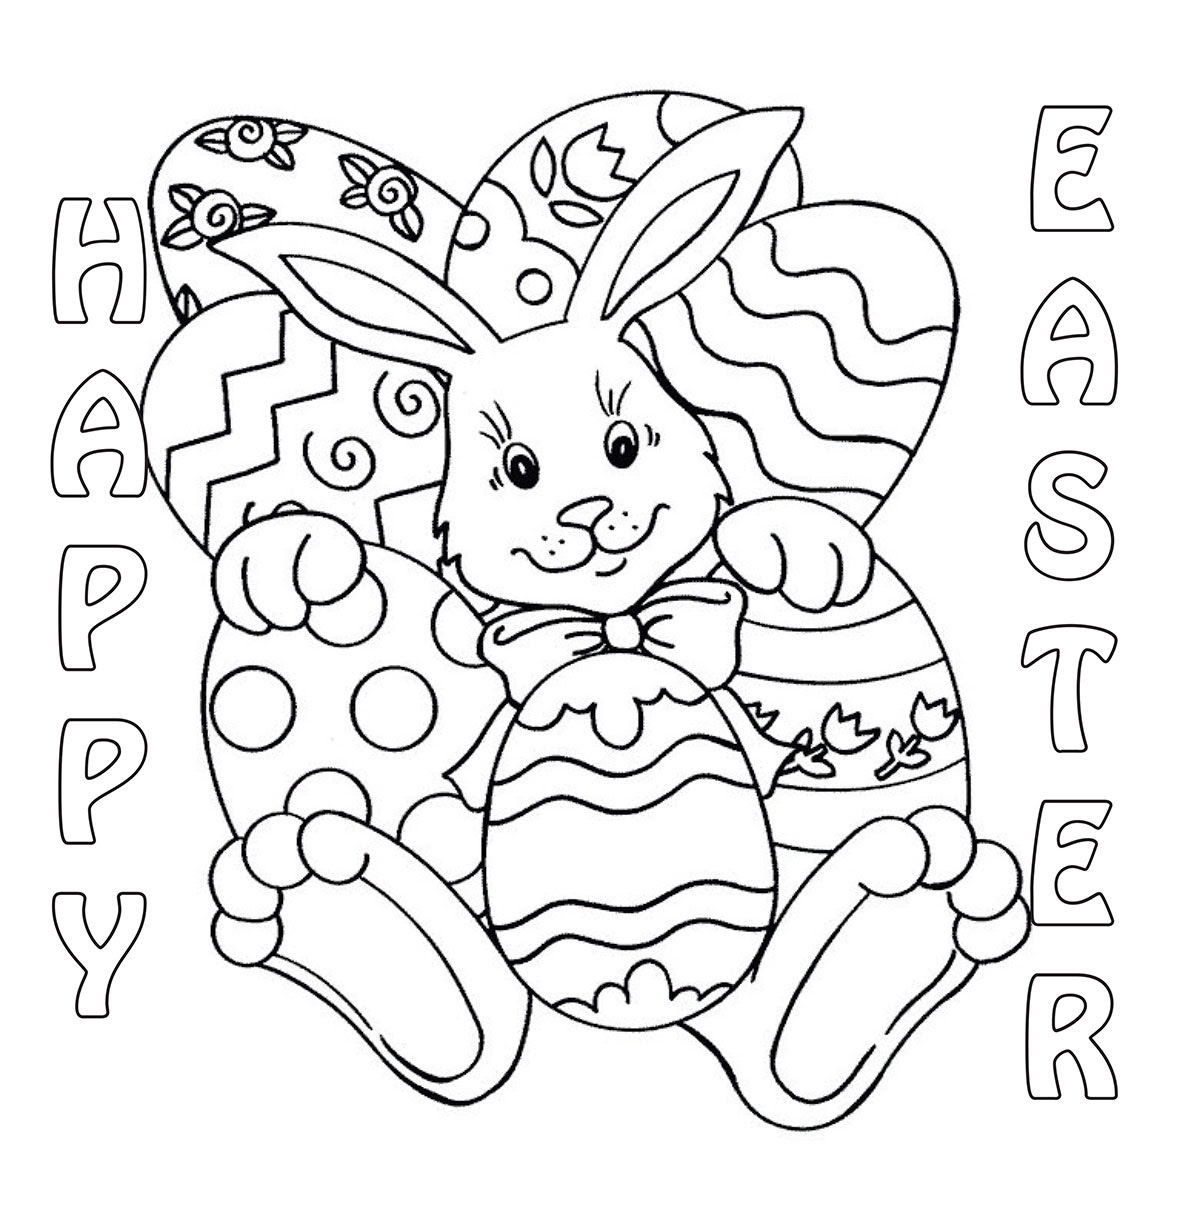 Easter Coloring Contest 2014 | Cedar Springs Post Newspaper